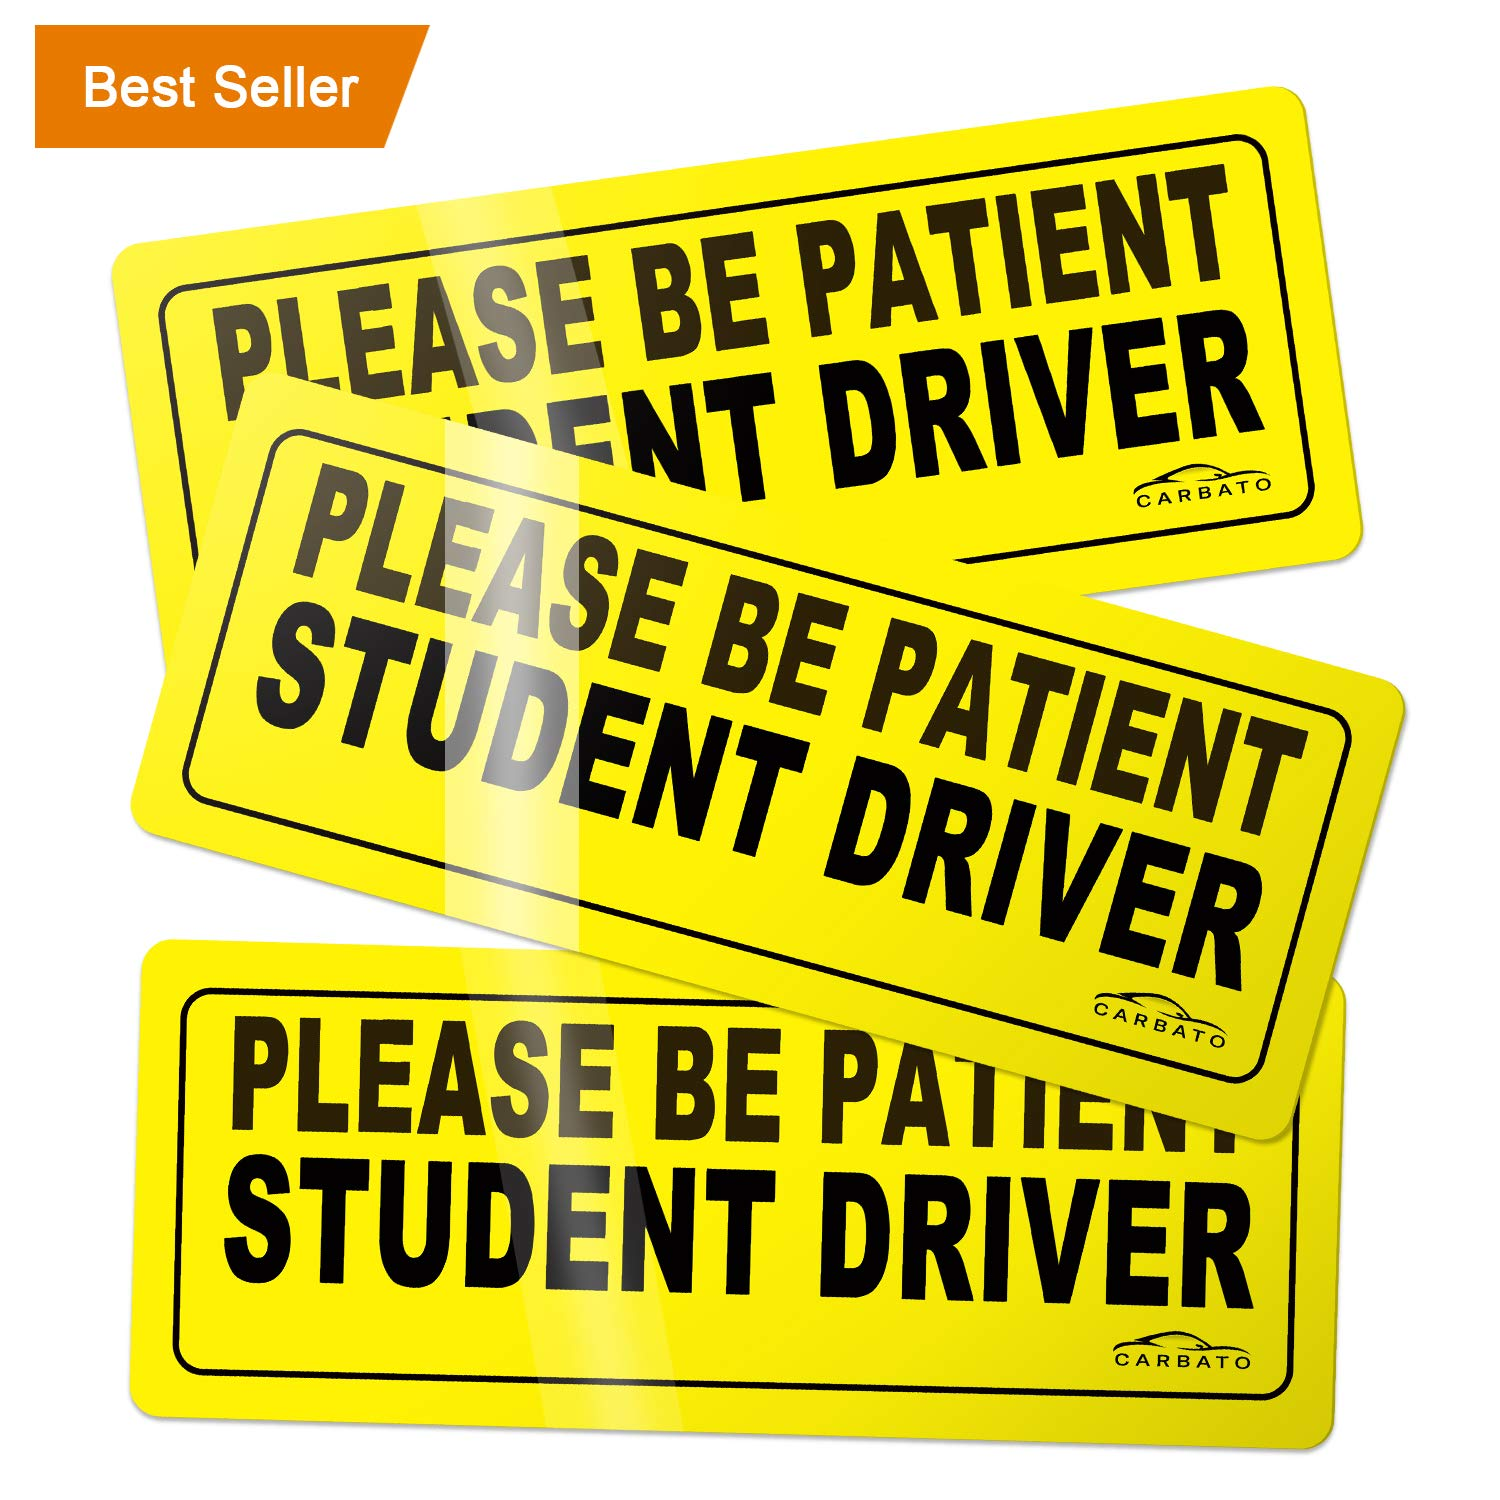 CARBATO Please Be Patient Student Driver Safety Sign Vehicle Bumper Magnet Car Vehicle Reflective Sign Sticker Bumper for New Drivers Set of 3